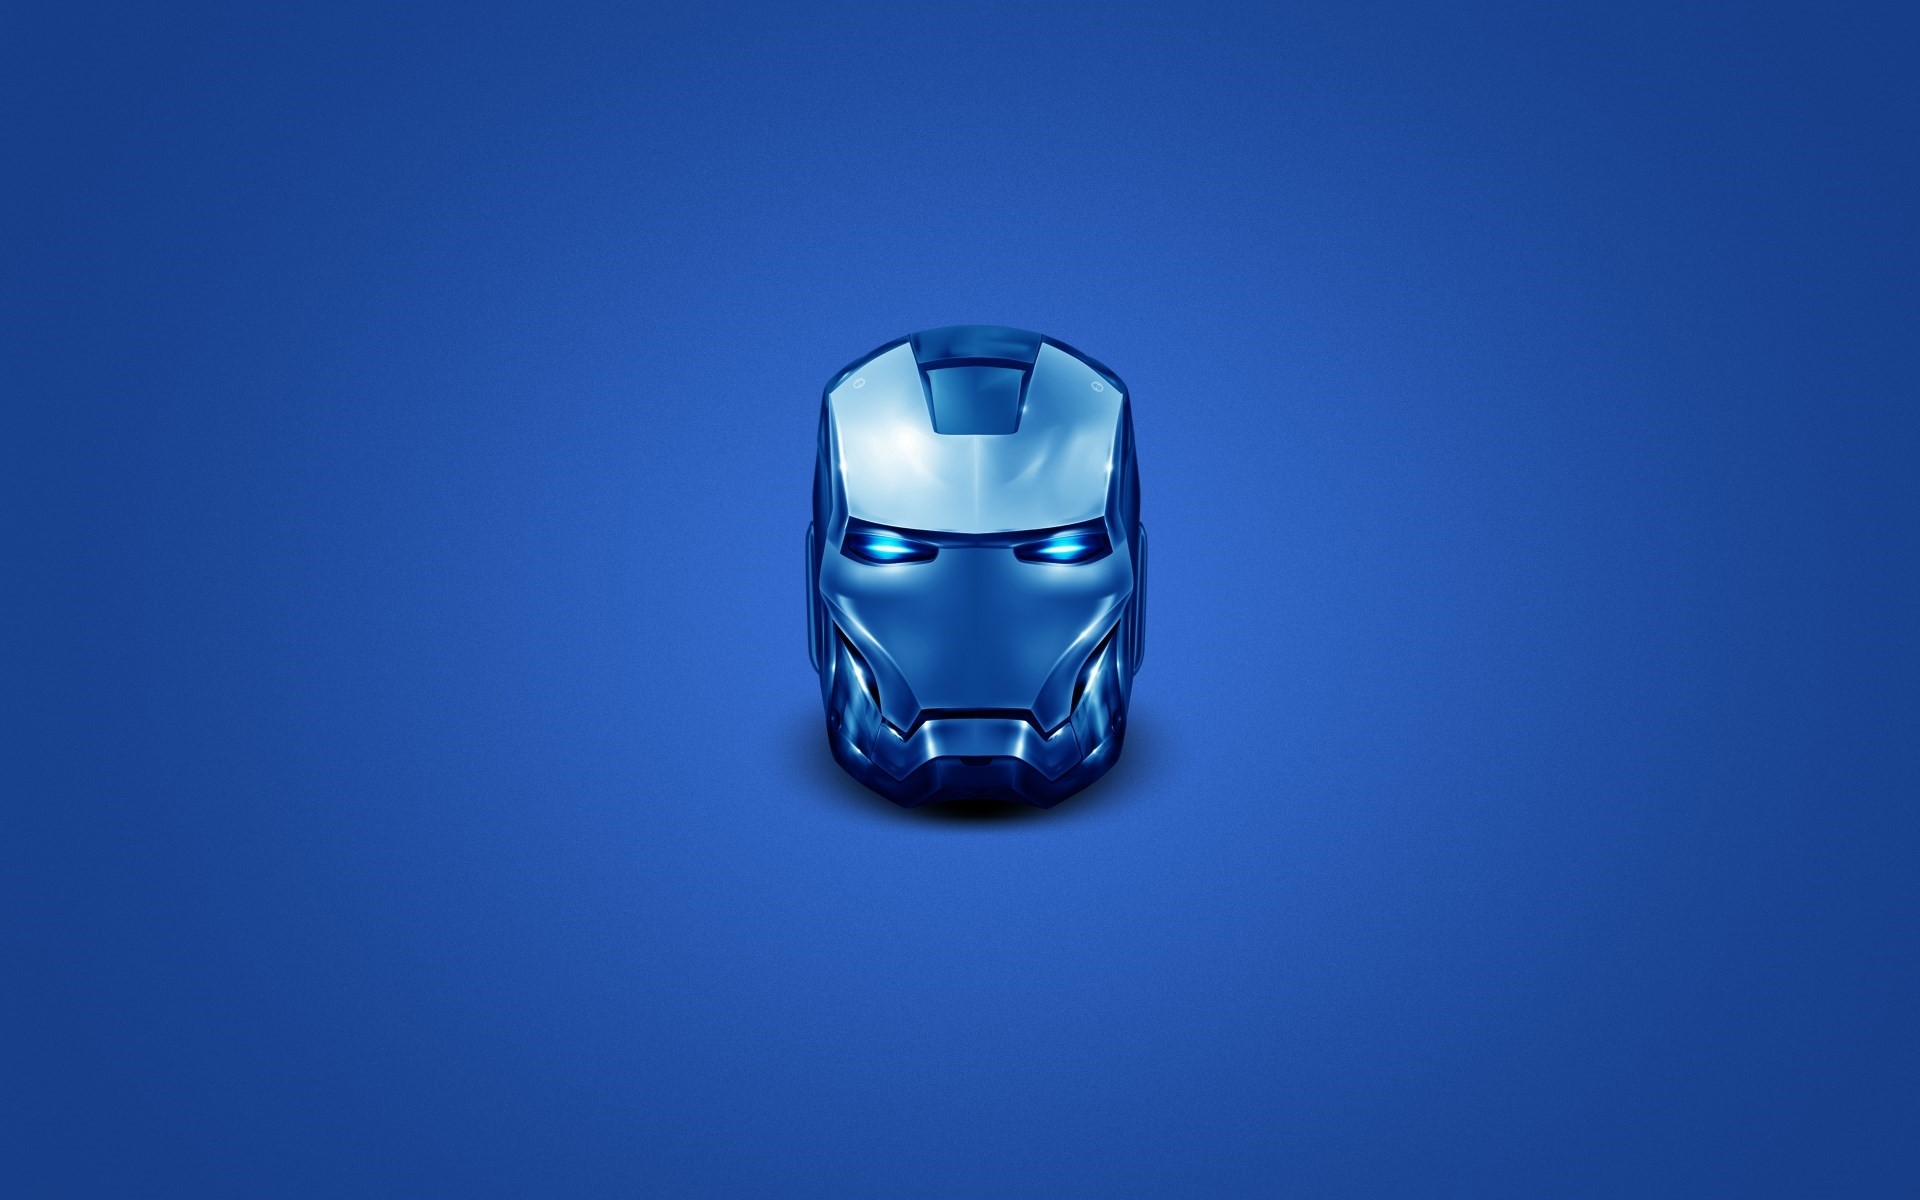 1920x1200 minimalism iron man mask hd wallpaper